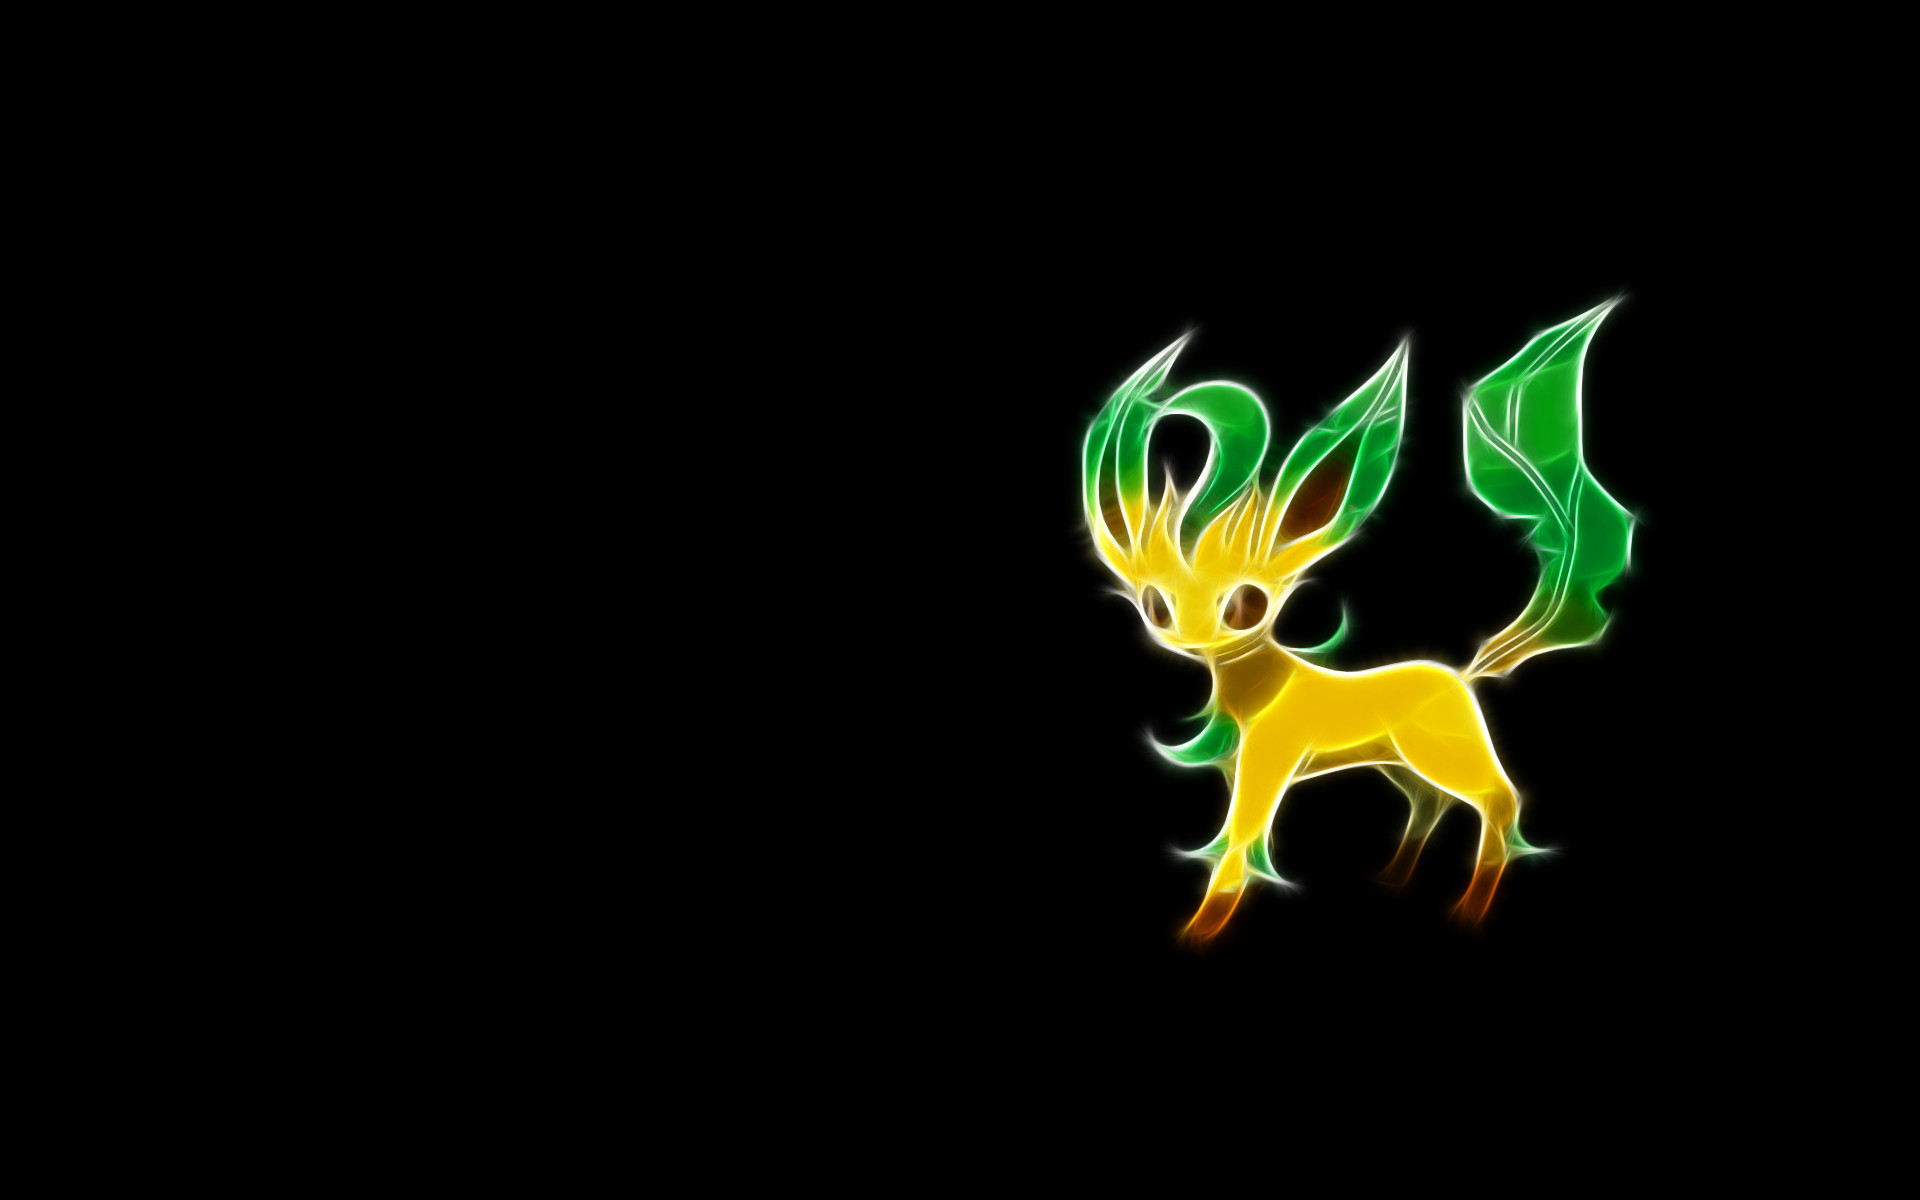 1920x1200 HD Pokemon Phone Eevee Backgrounds | 3D Wallpapers | Pinterest | Eevee  evolutions, Wallpapers and Evolution